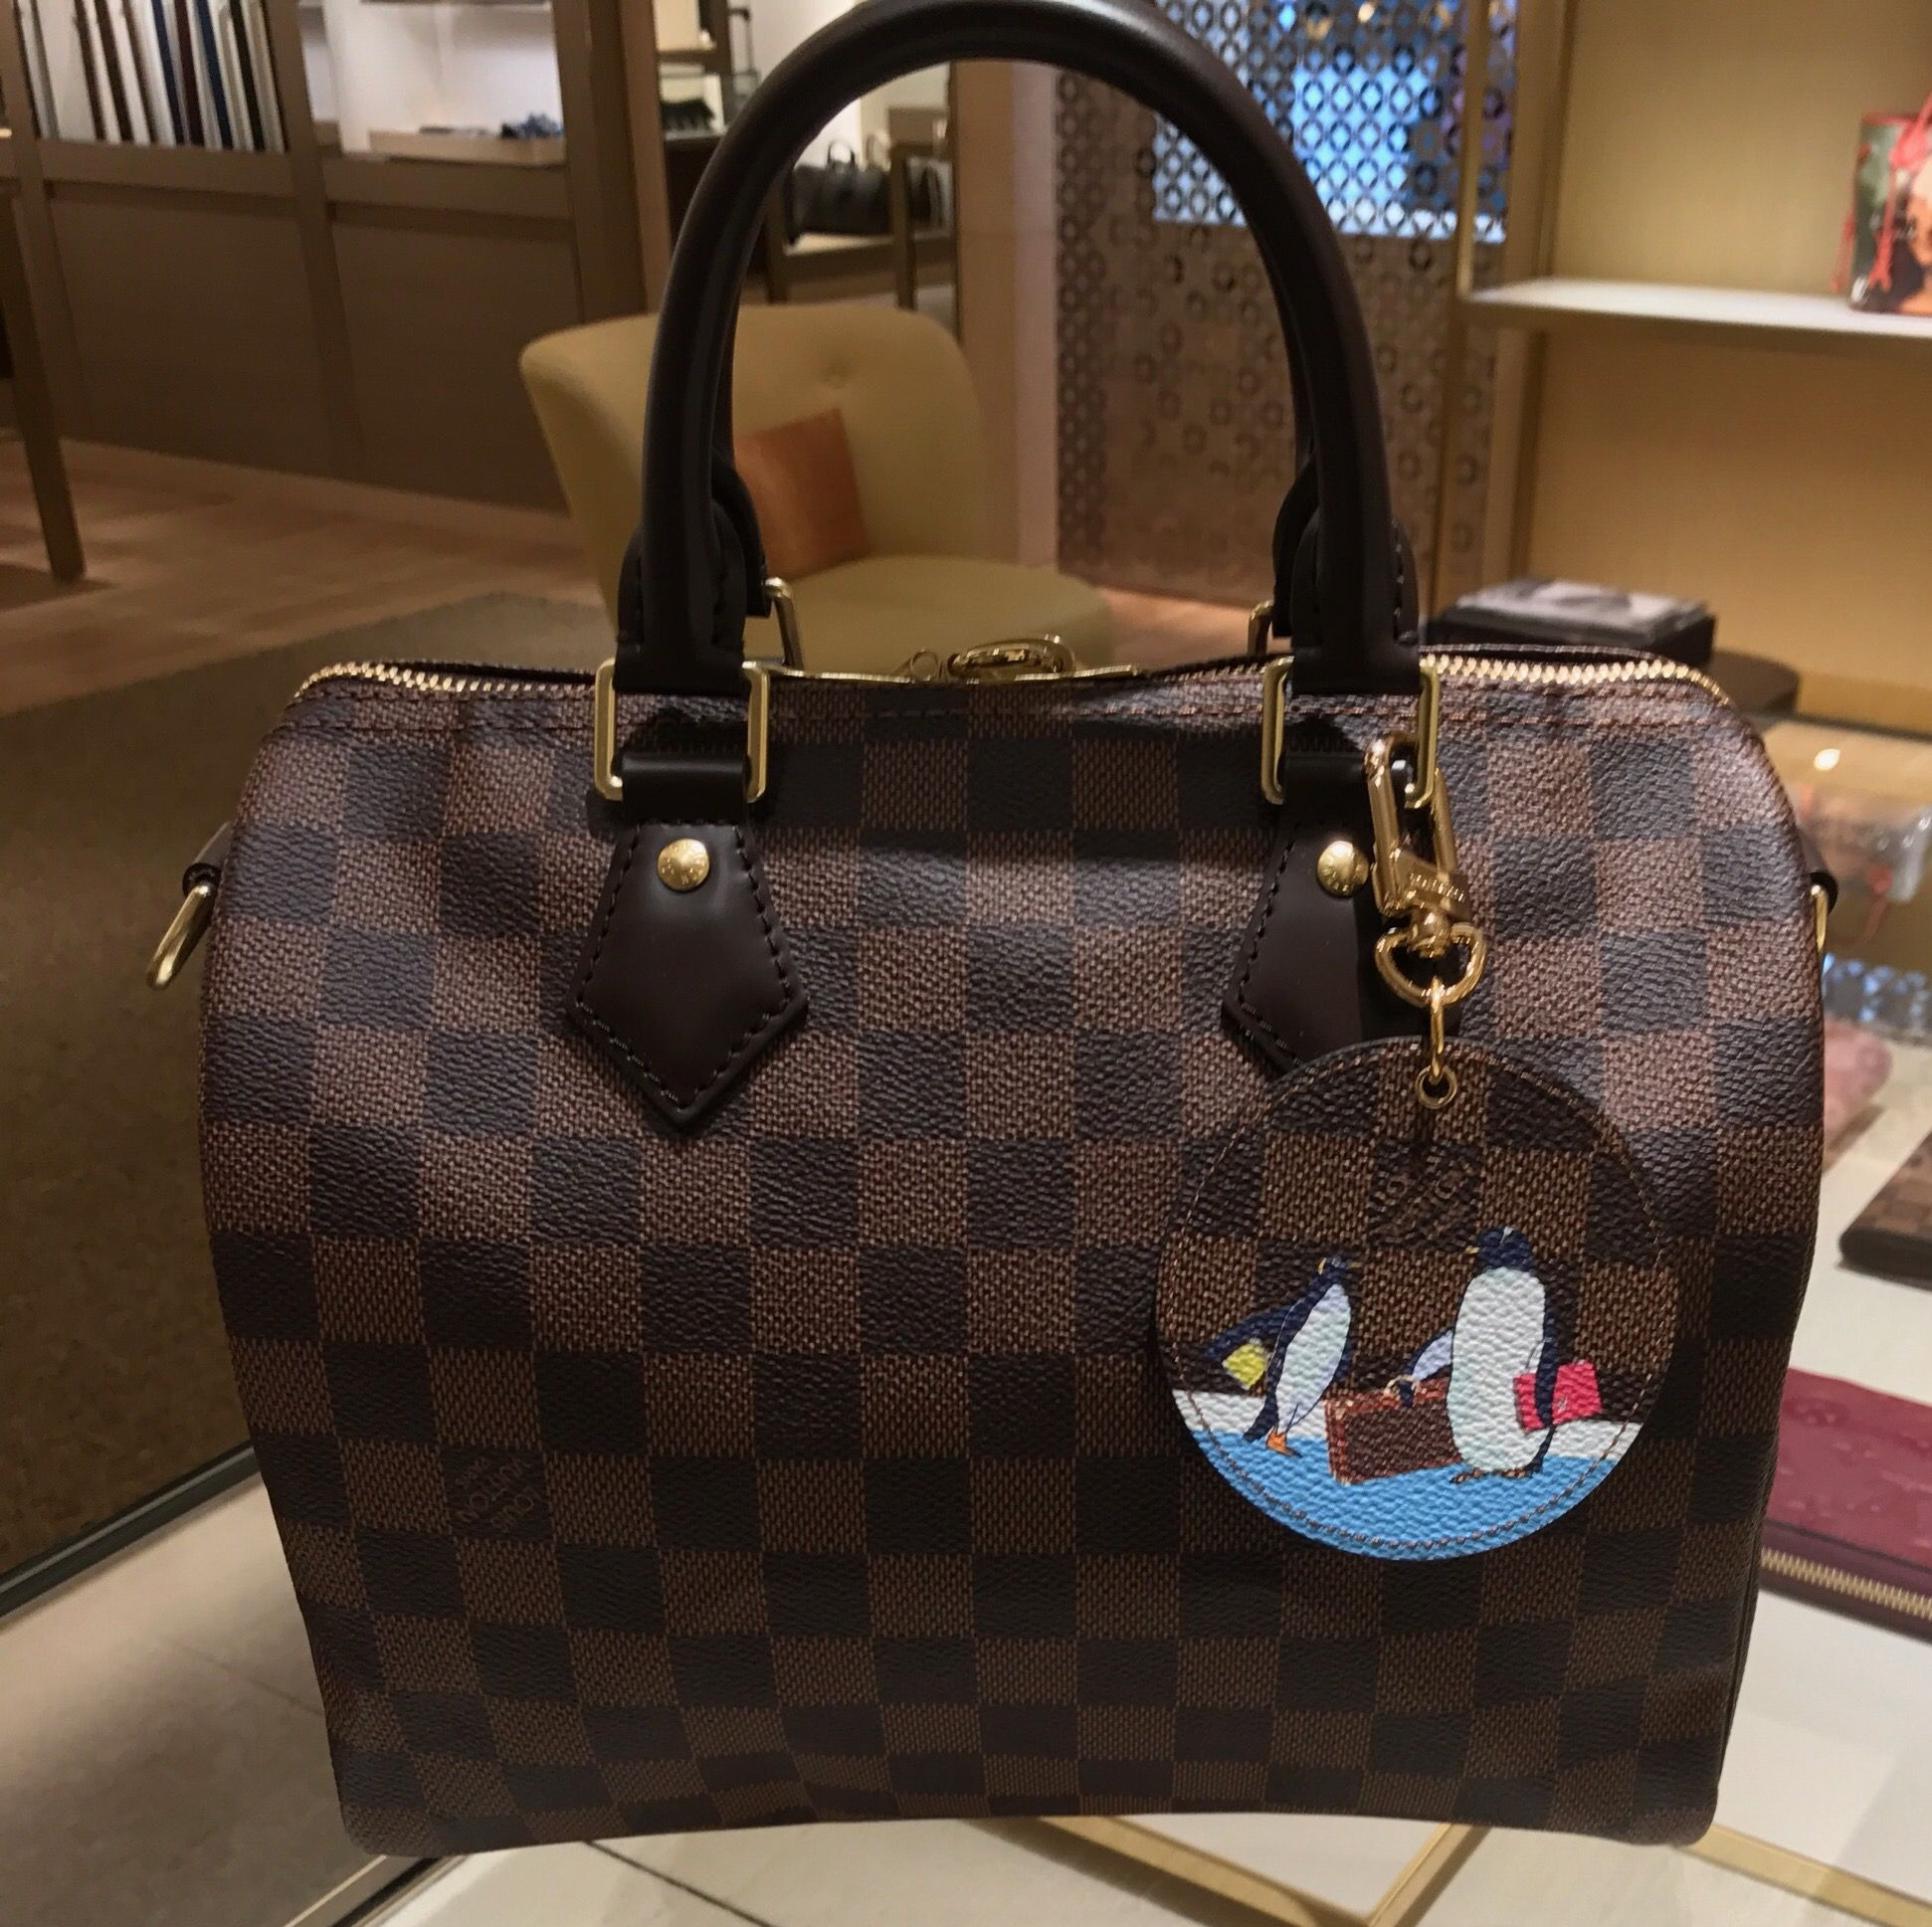 509830bba732 Louis Vuitton penguin charm from Christmas animation 2017 release on Damier  Ebene Speedy B 25